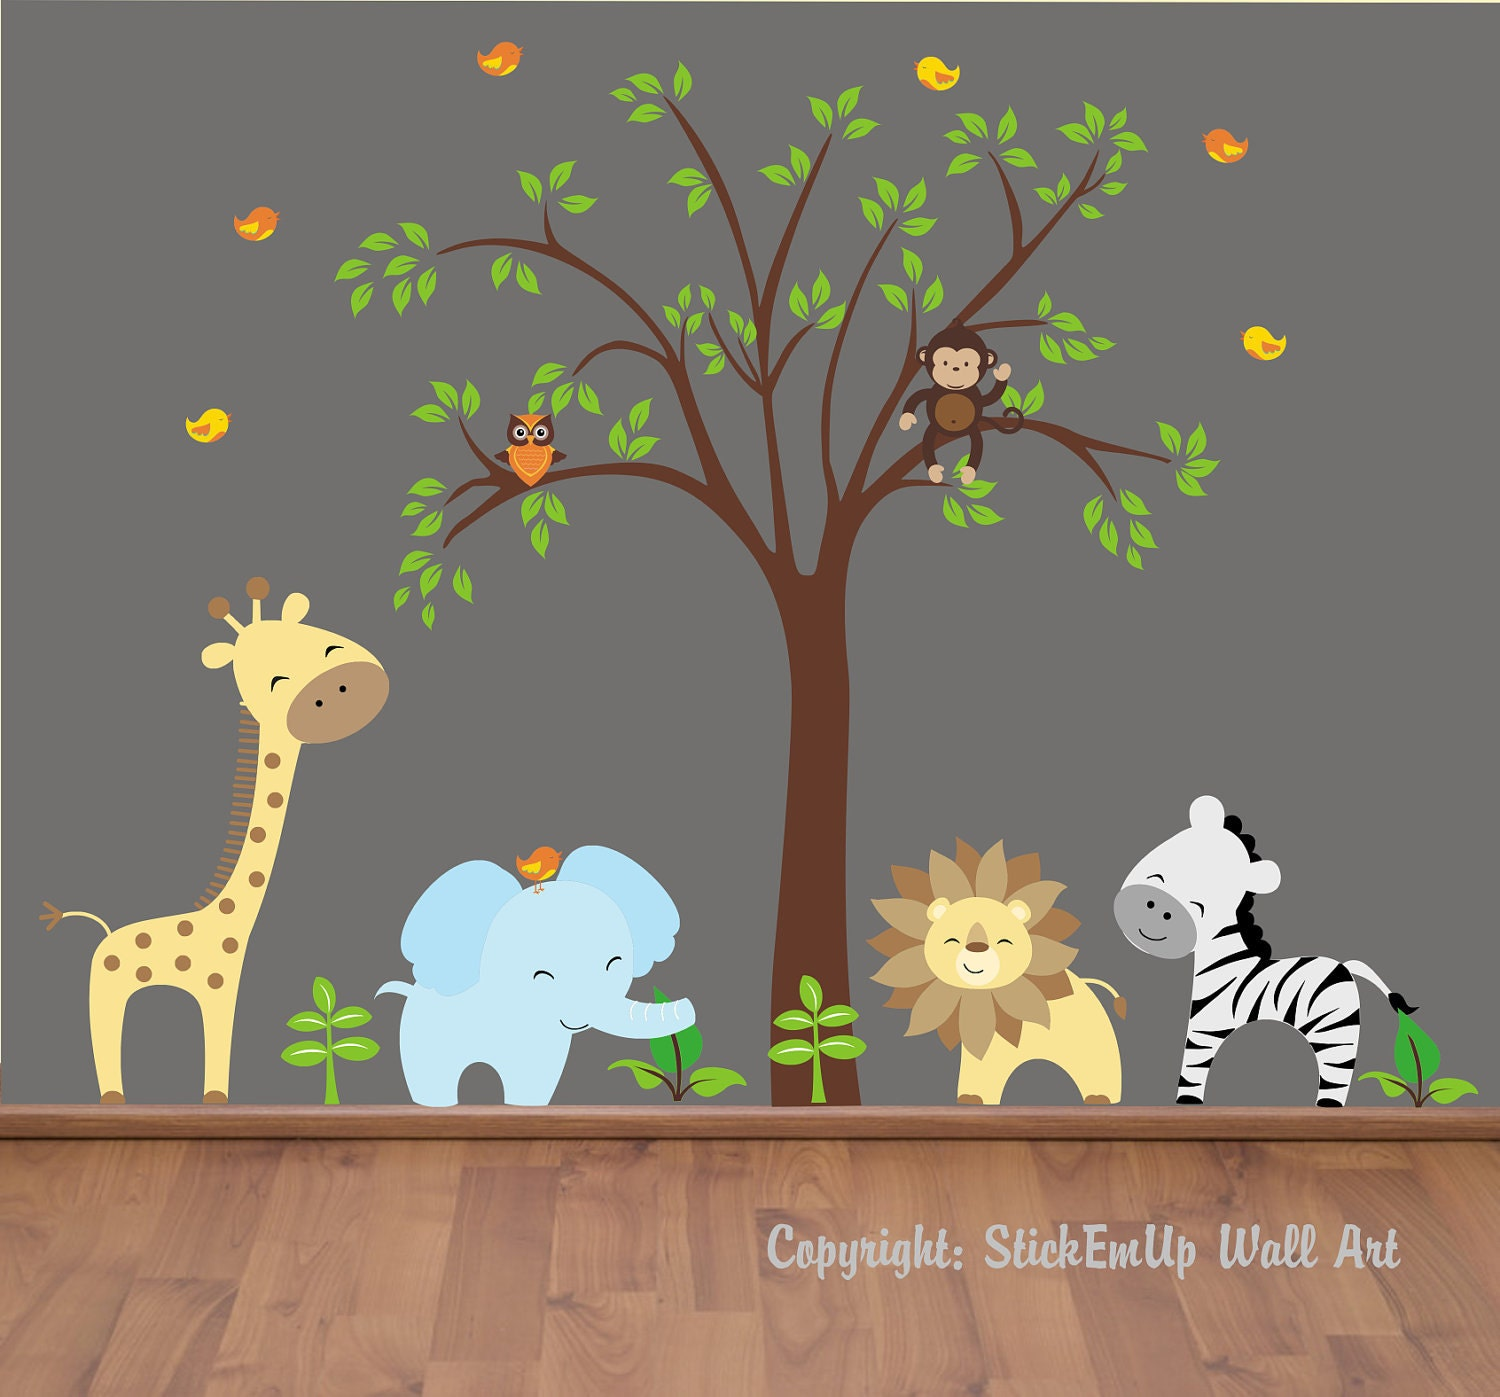 Popular items for baby wall decals on Etsy